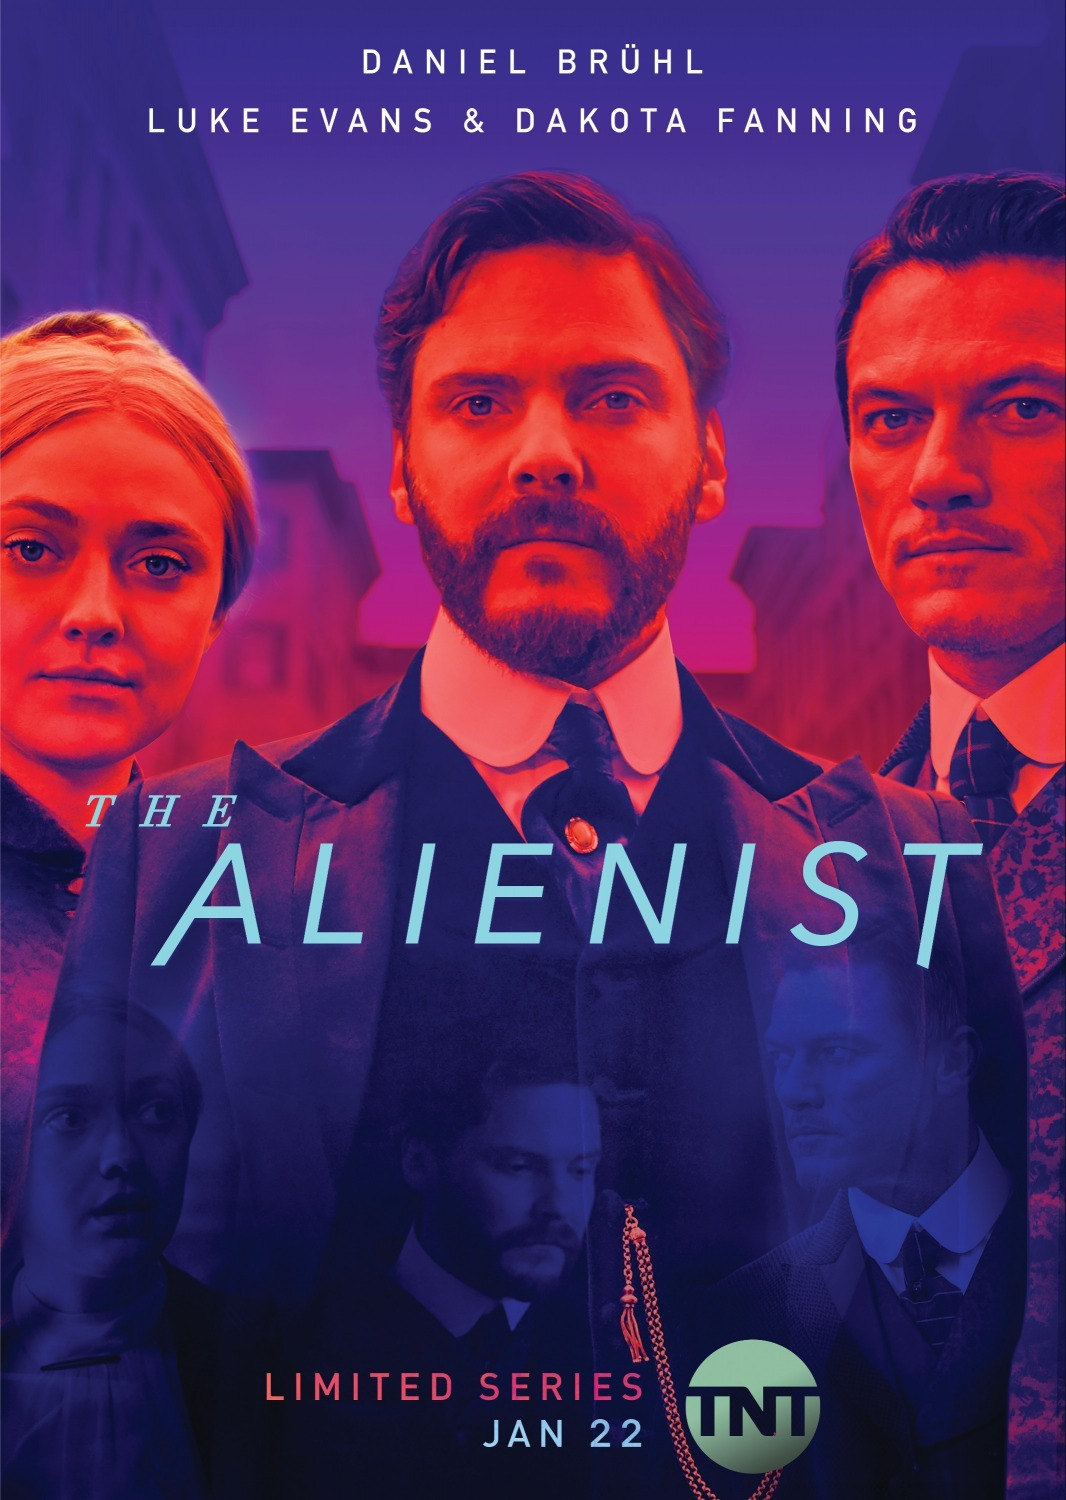 The Alienist S02 2020 Hindi Complete Netflix Web Series 1.2GB HDRip Download